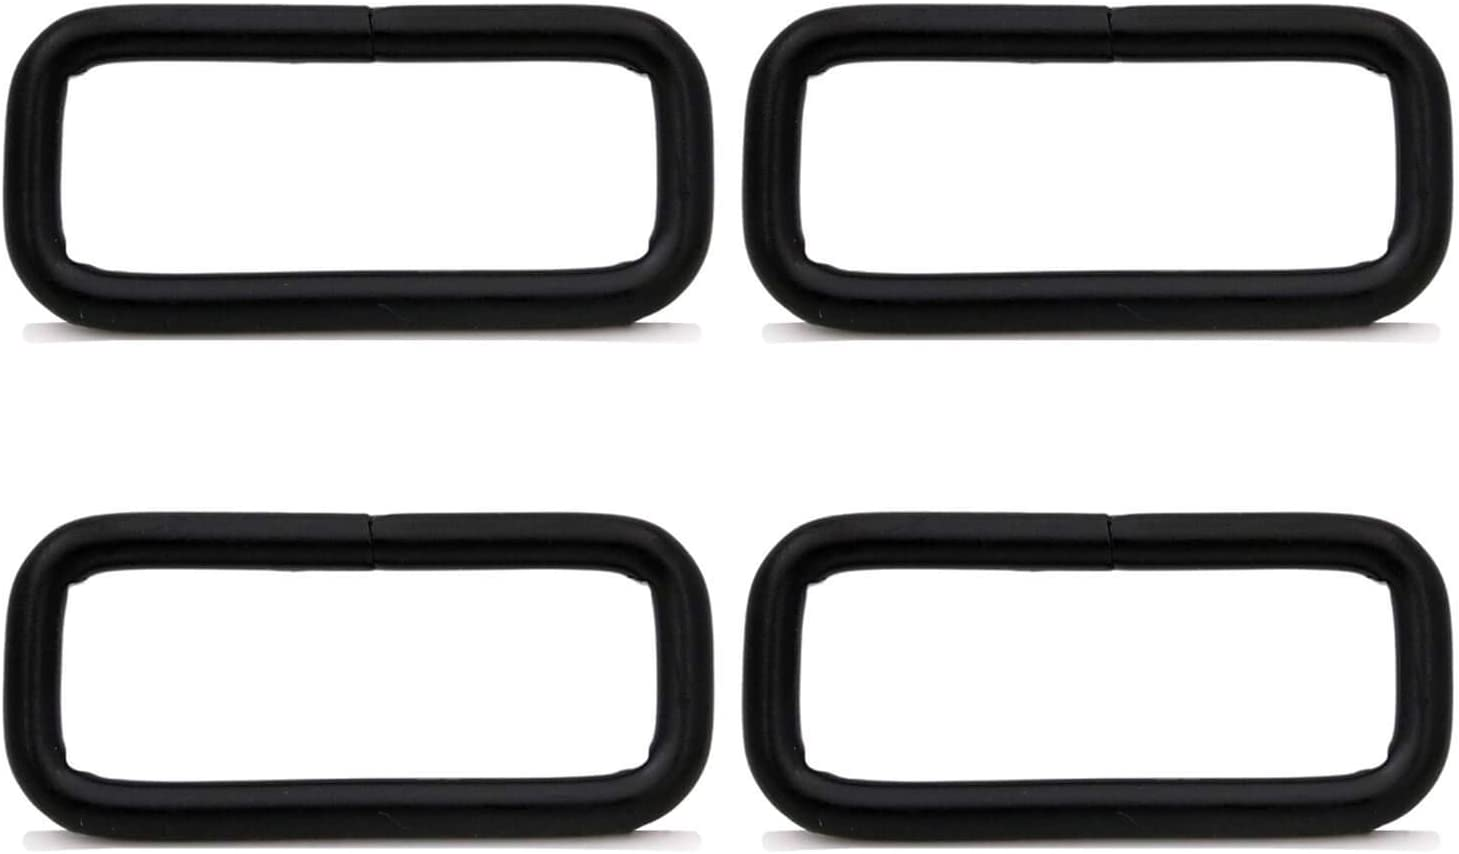 BIKICOCO Rectangle Buckle Ring Metal Non Welded 3.8 x 2 cm Inside Dimensions Black Pack of 4